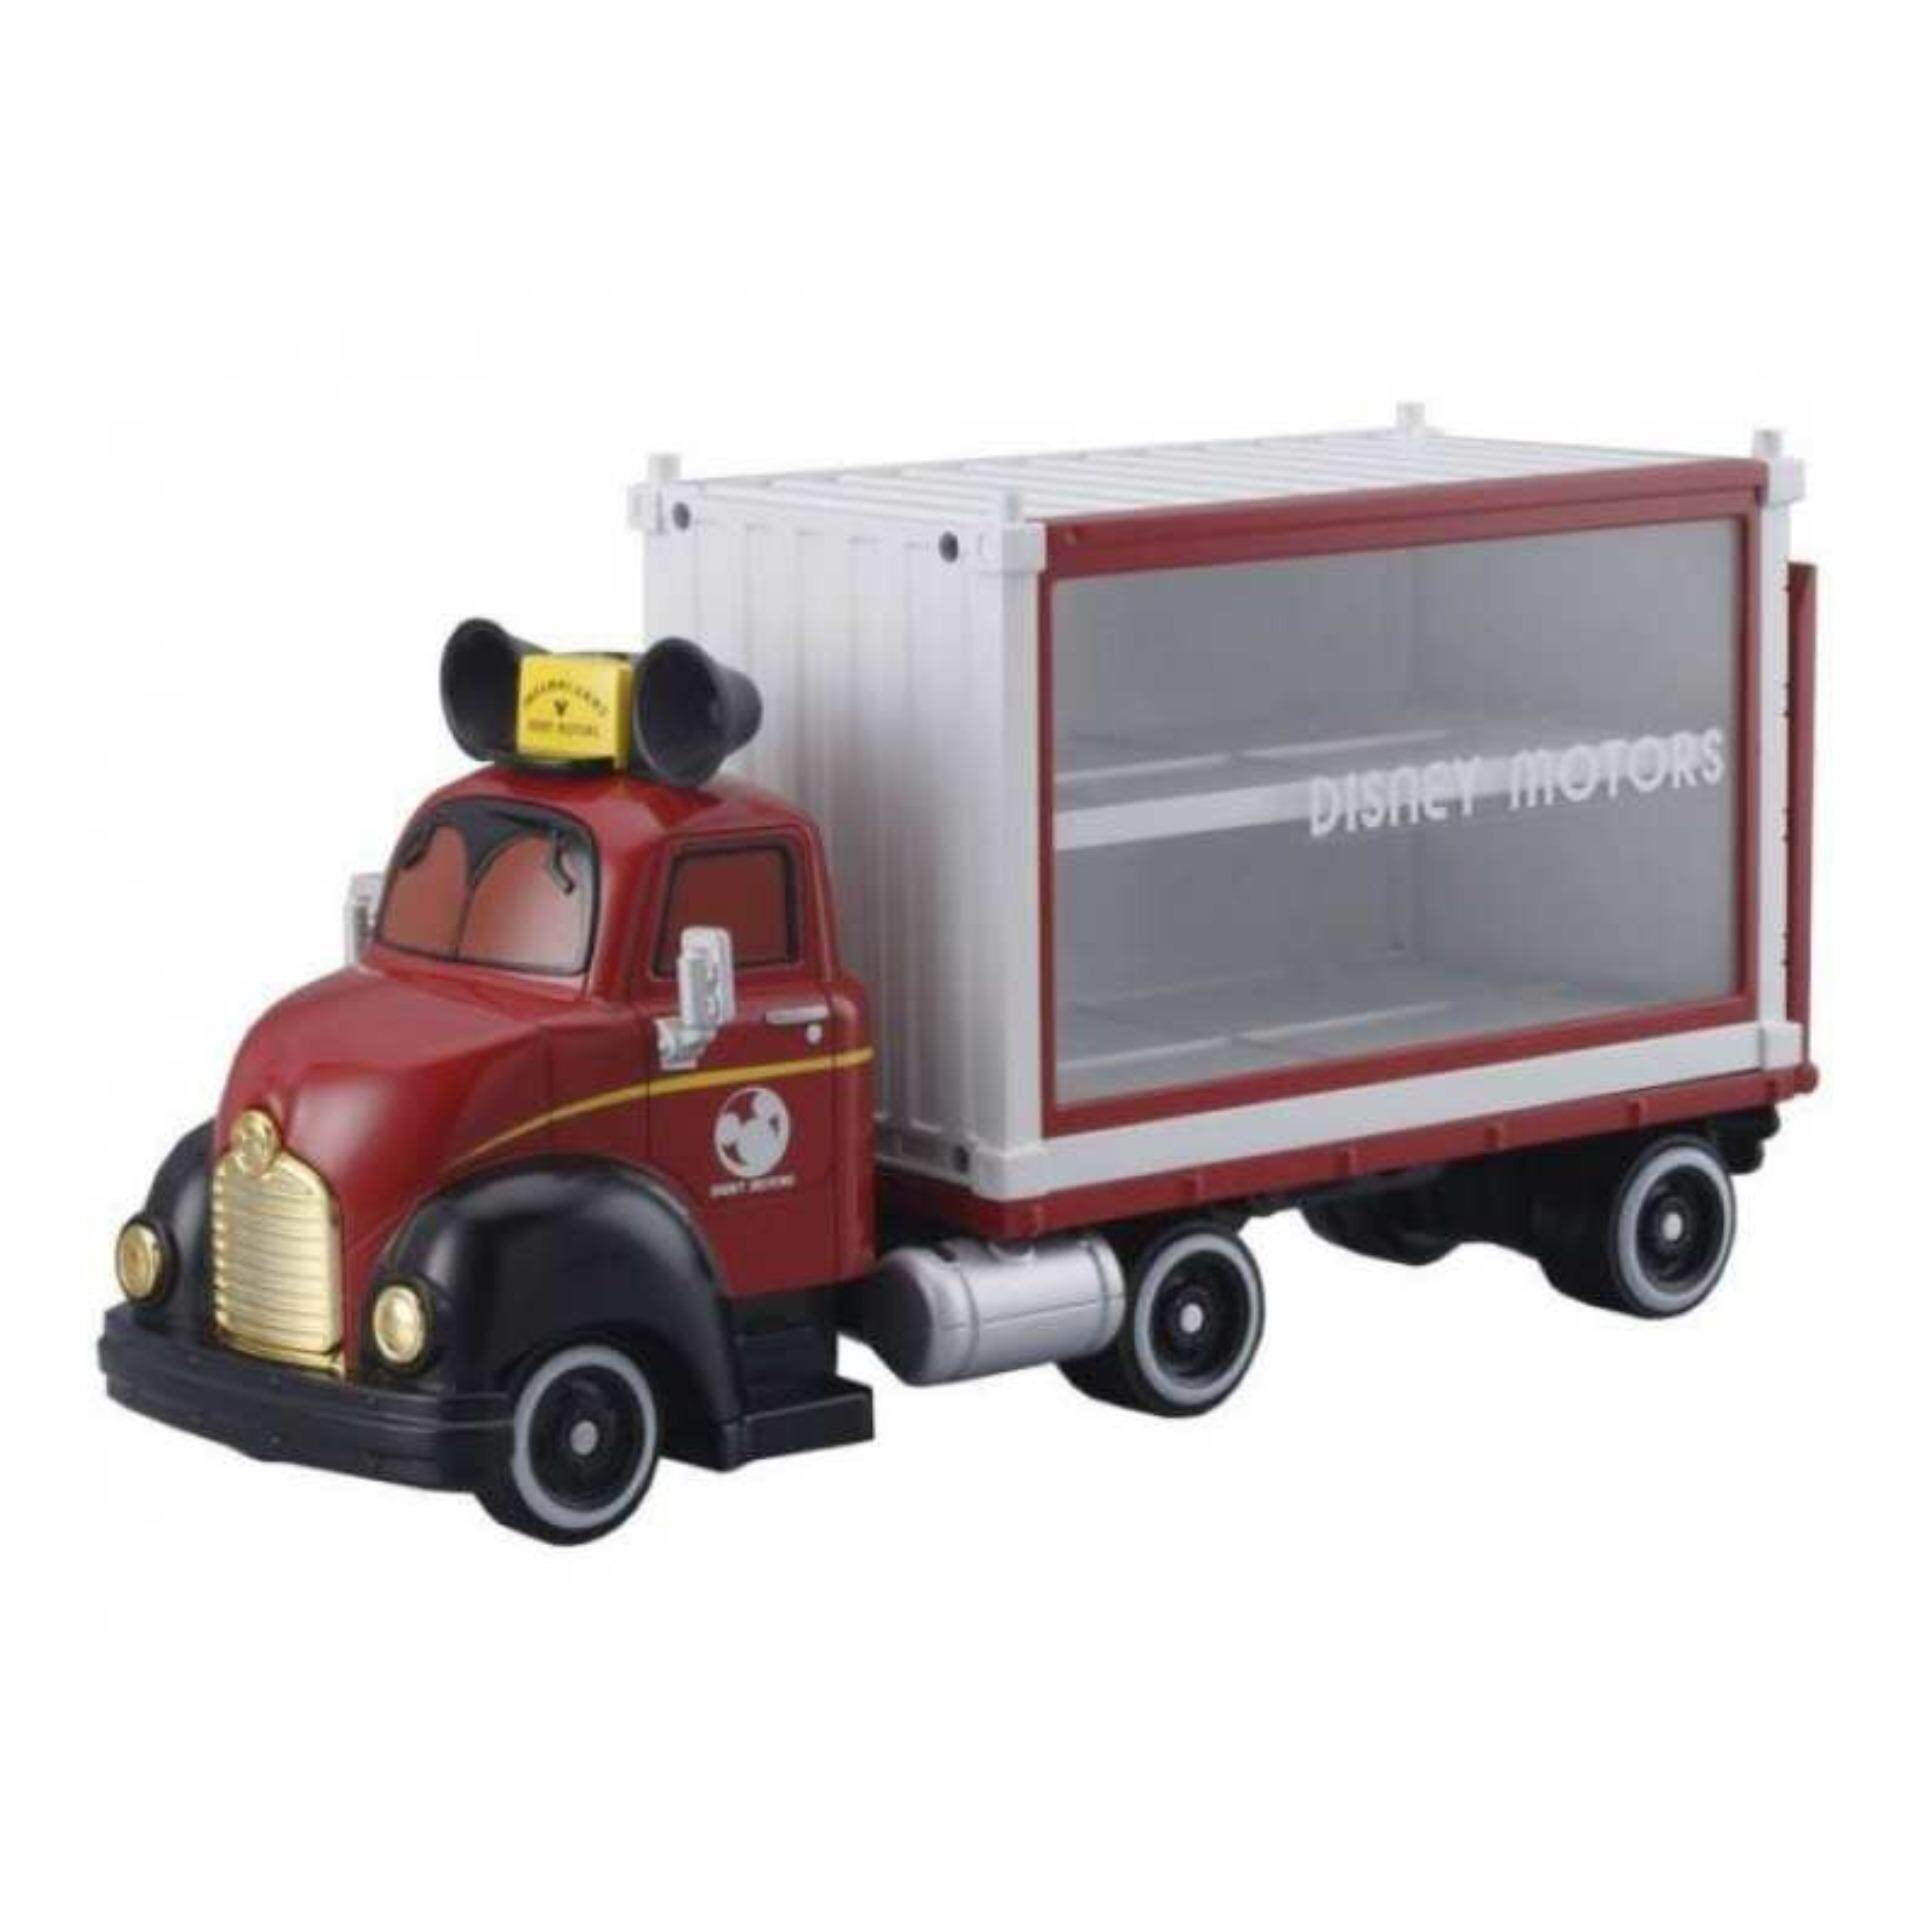 Takara Tomy Disney Motors Dream Carry Mickey Tomica Truck - Multicolour Toys for boys